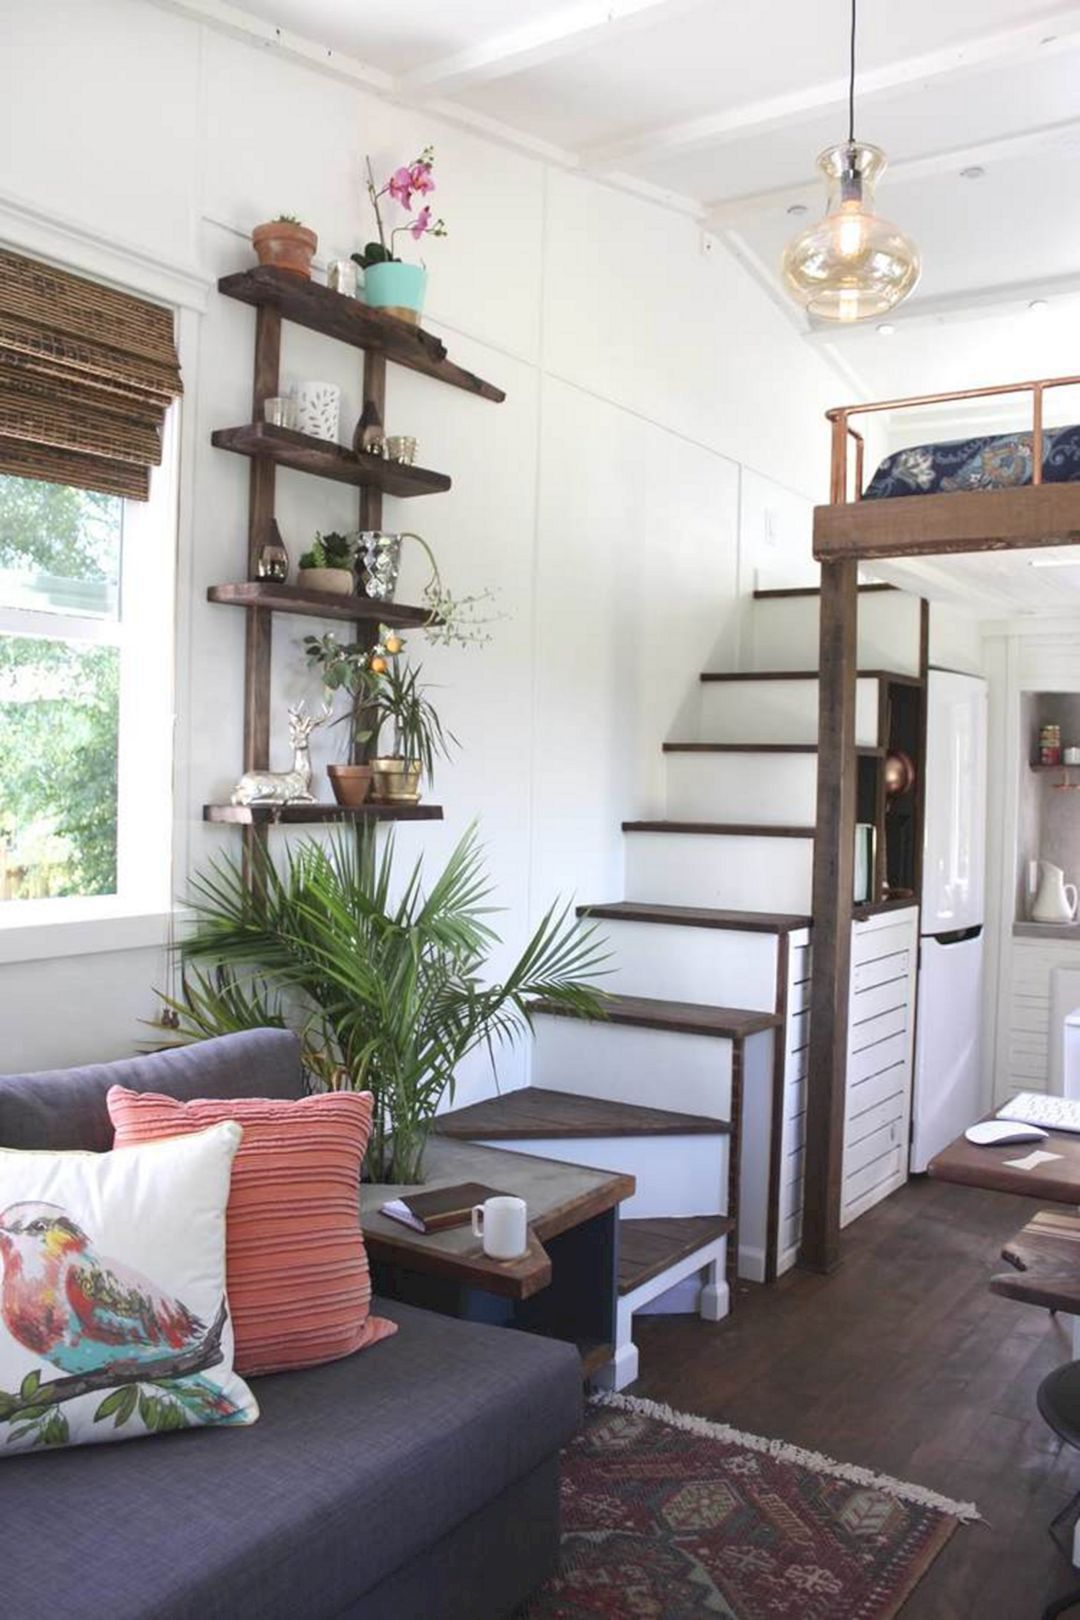 55 Incredible Tiny Living Room Design Ideas For Tiny House 56 | Tiny ...